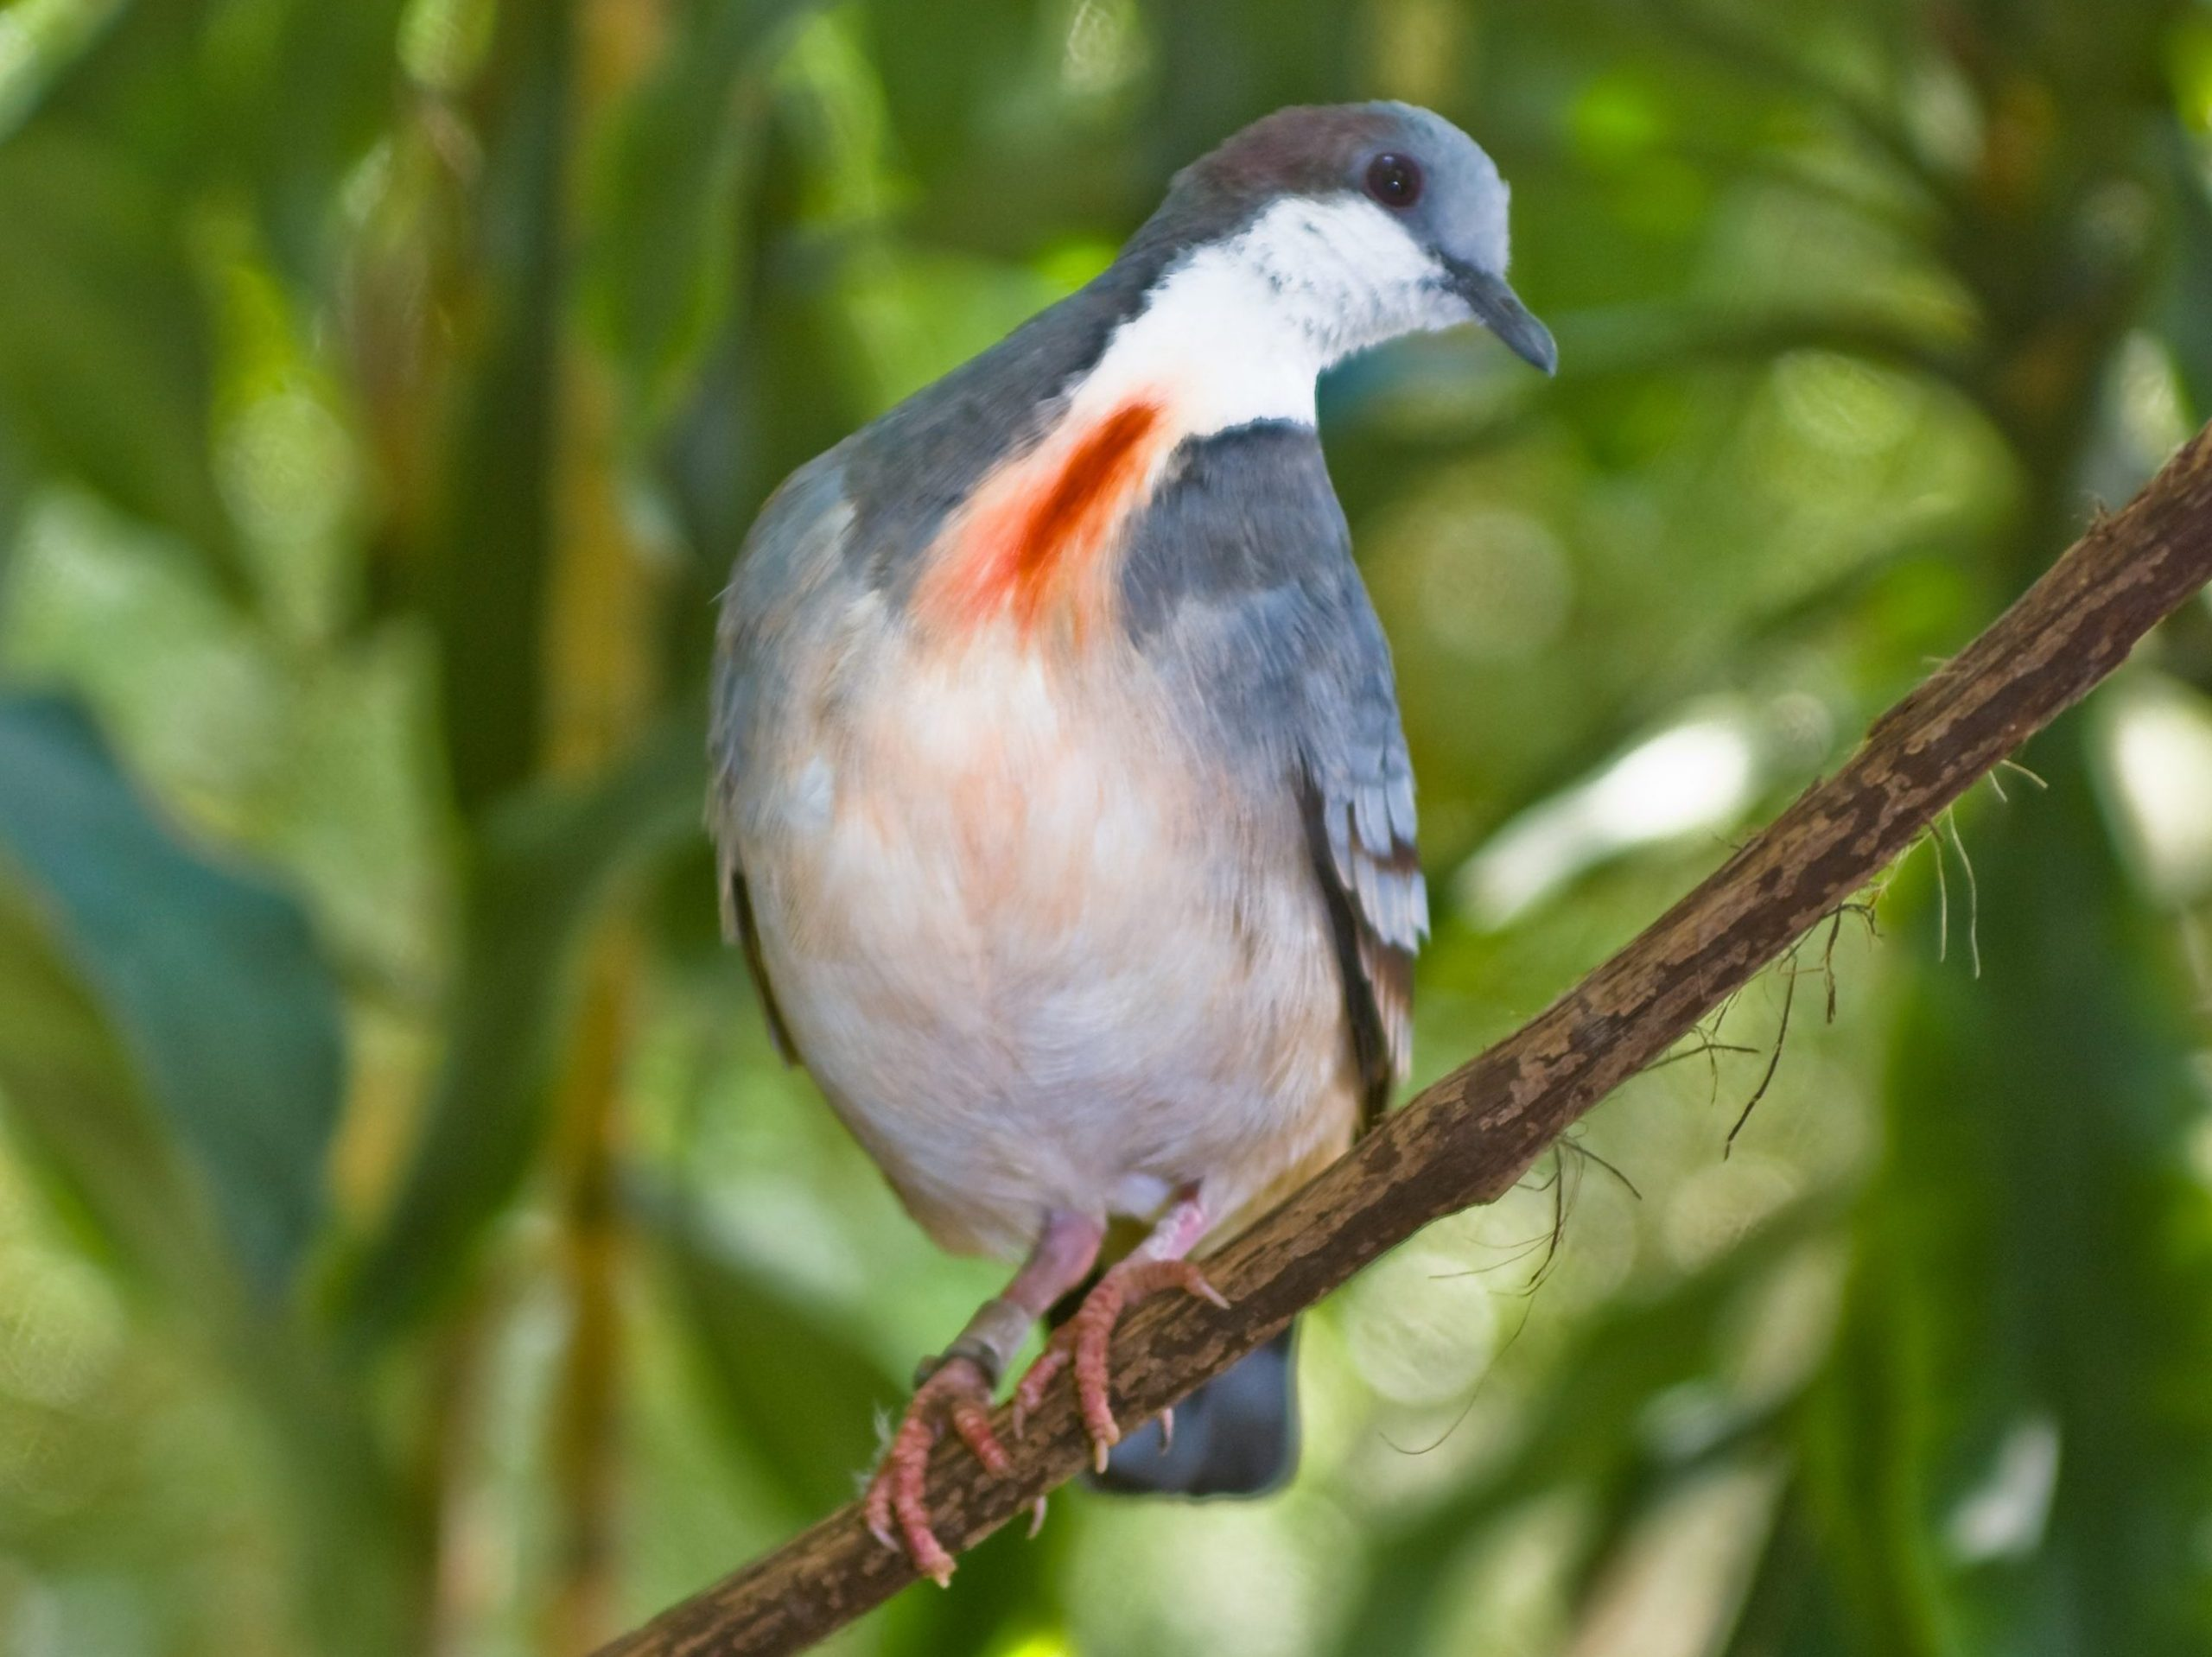 Luzon Bleeding-heart Dove perched on a branch